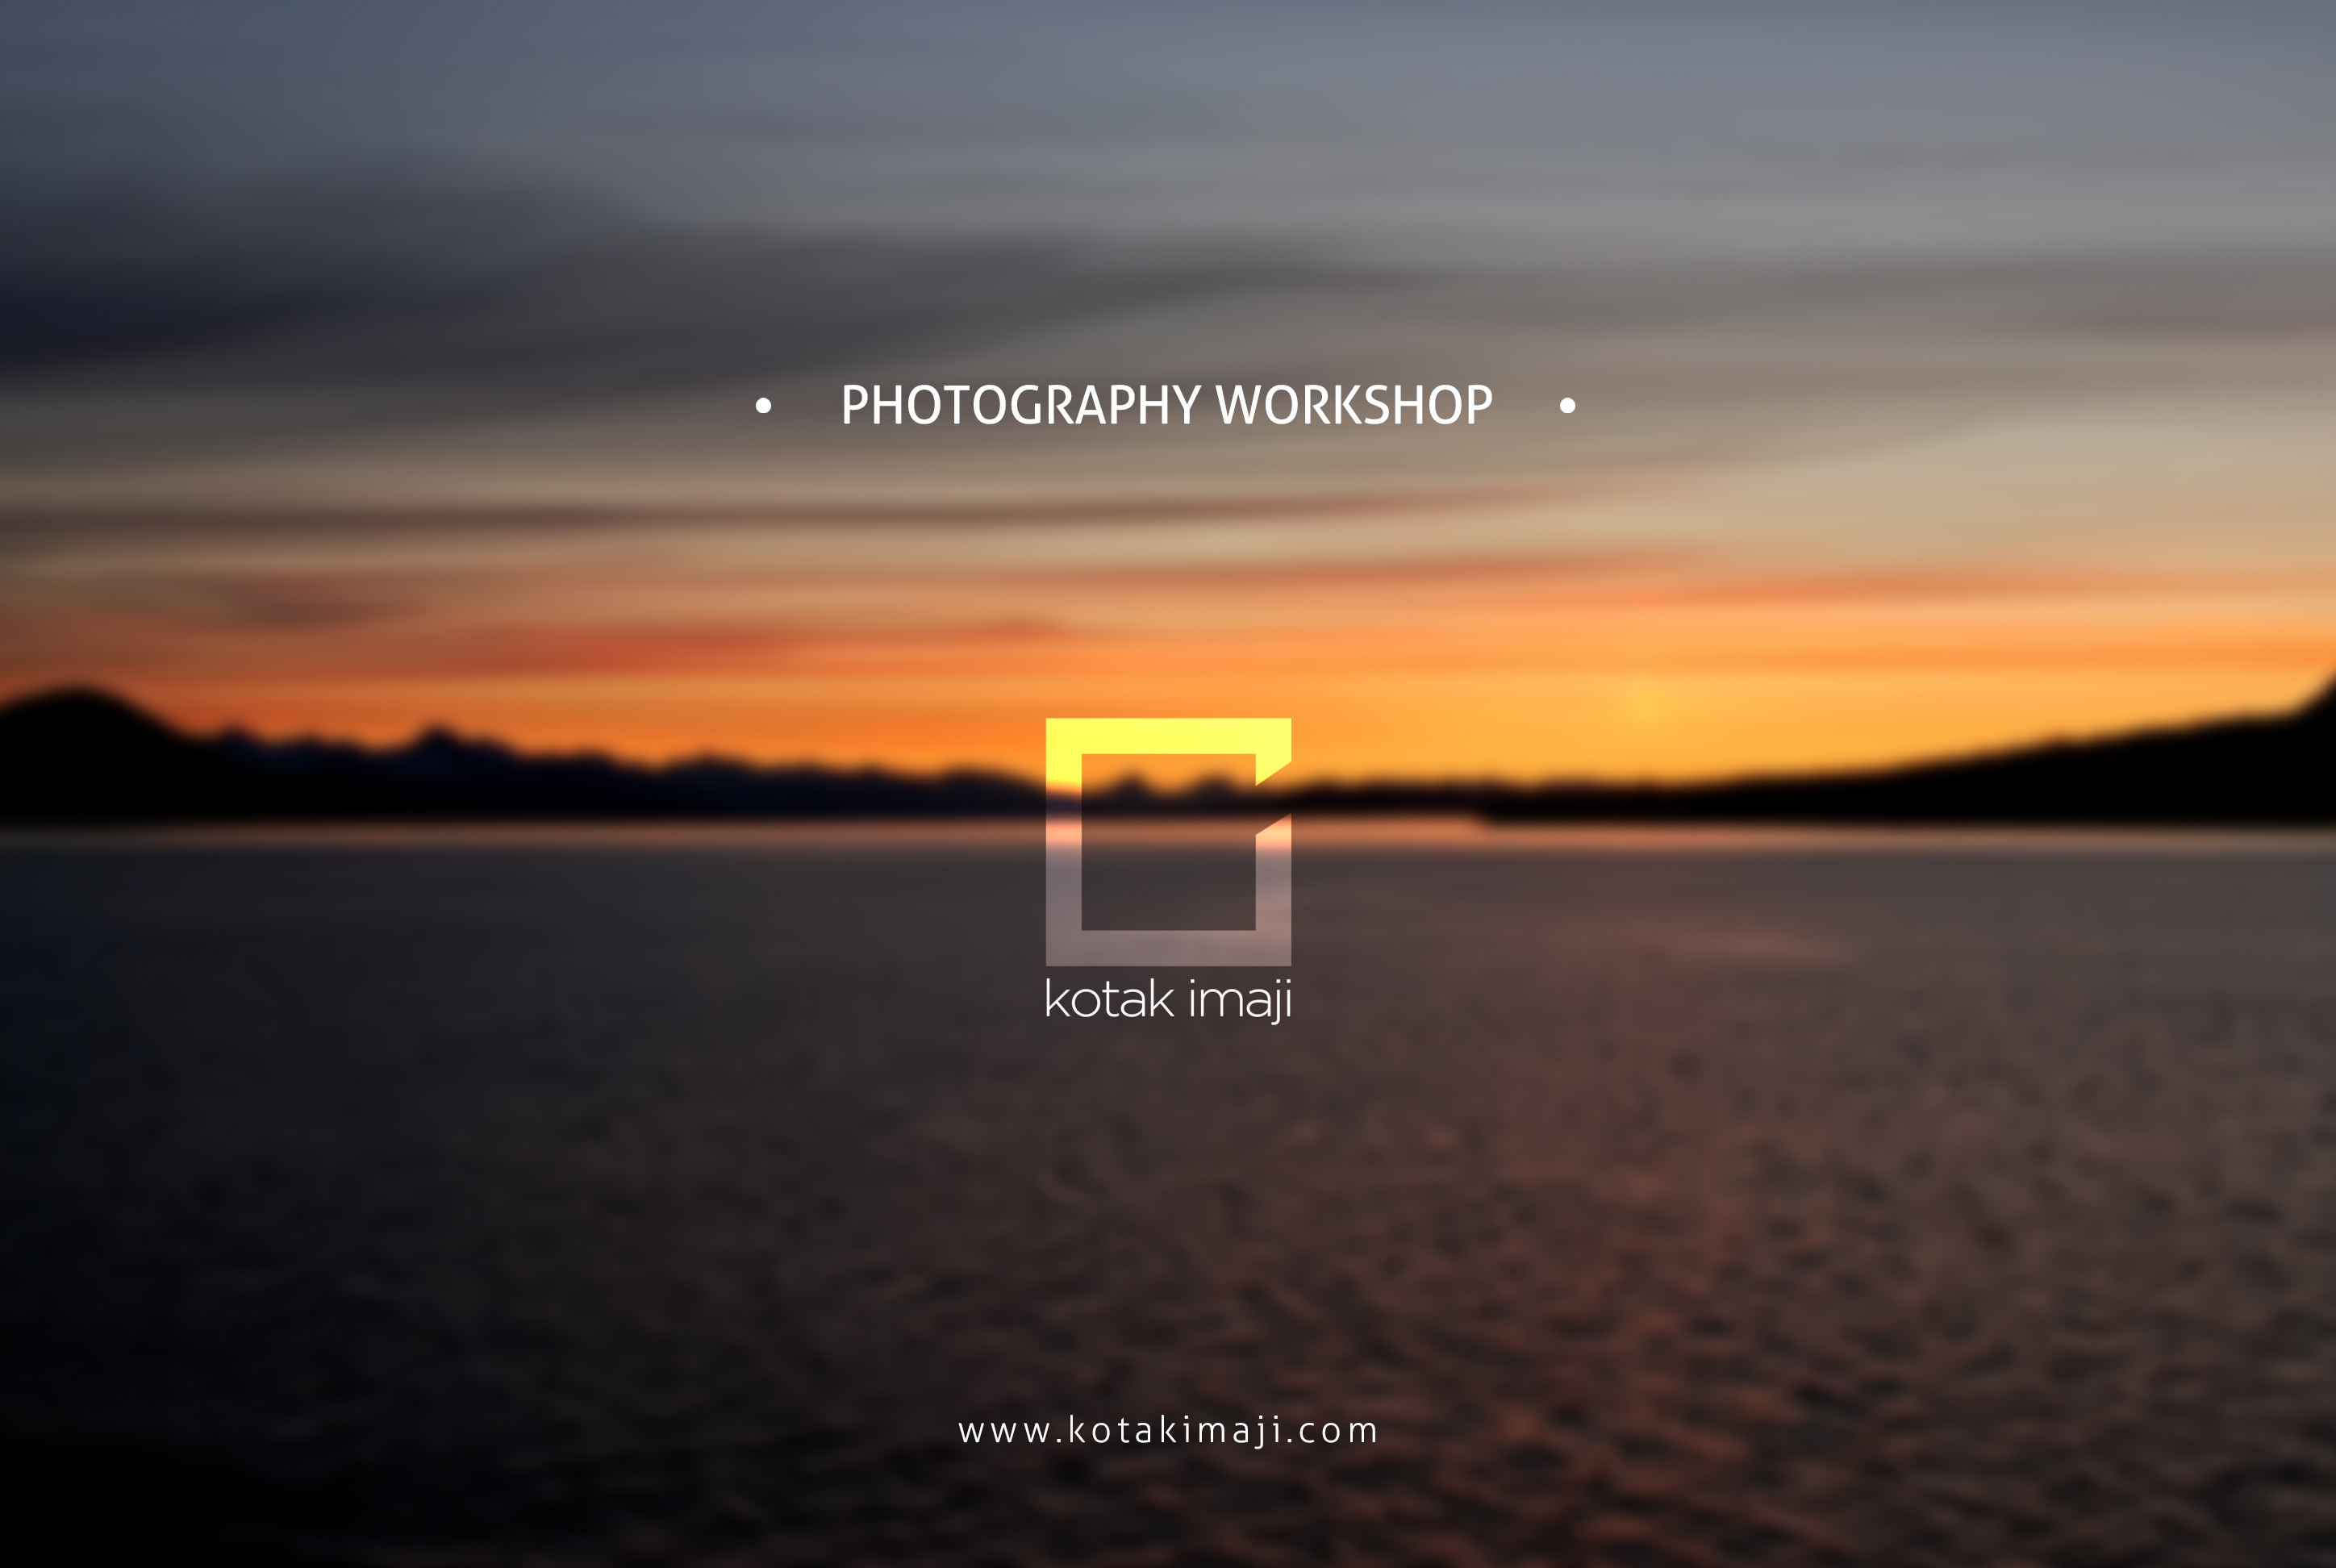 Principal Photography Workshop by Kotak Imaji: #4